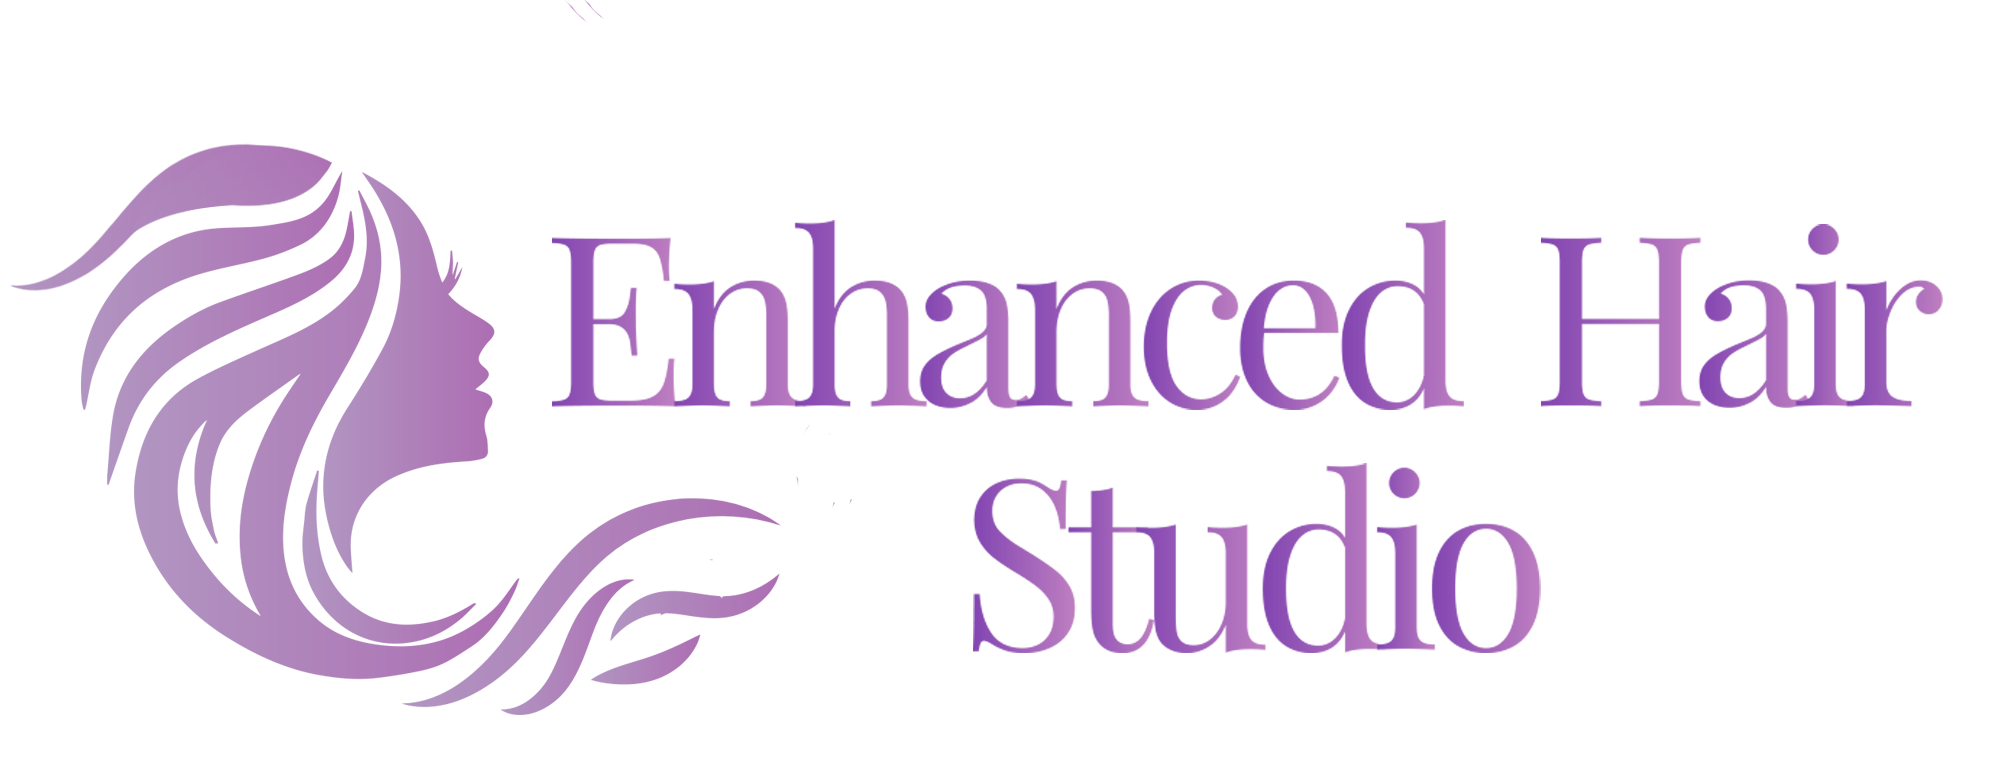 Enhanced Hair Studio logo